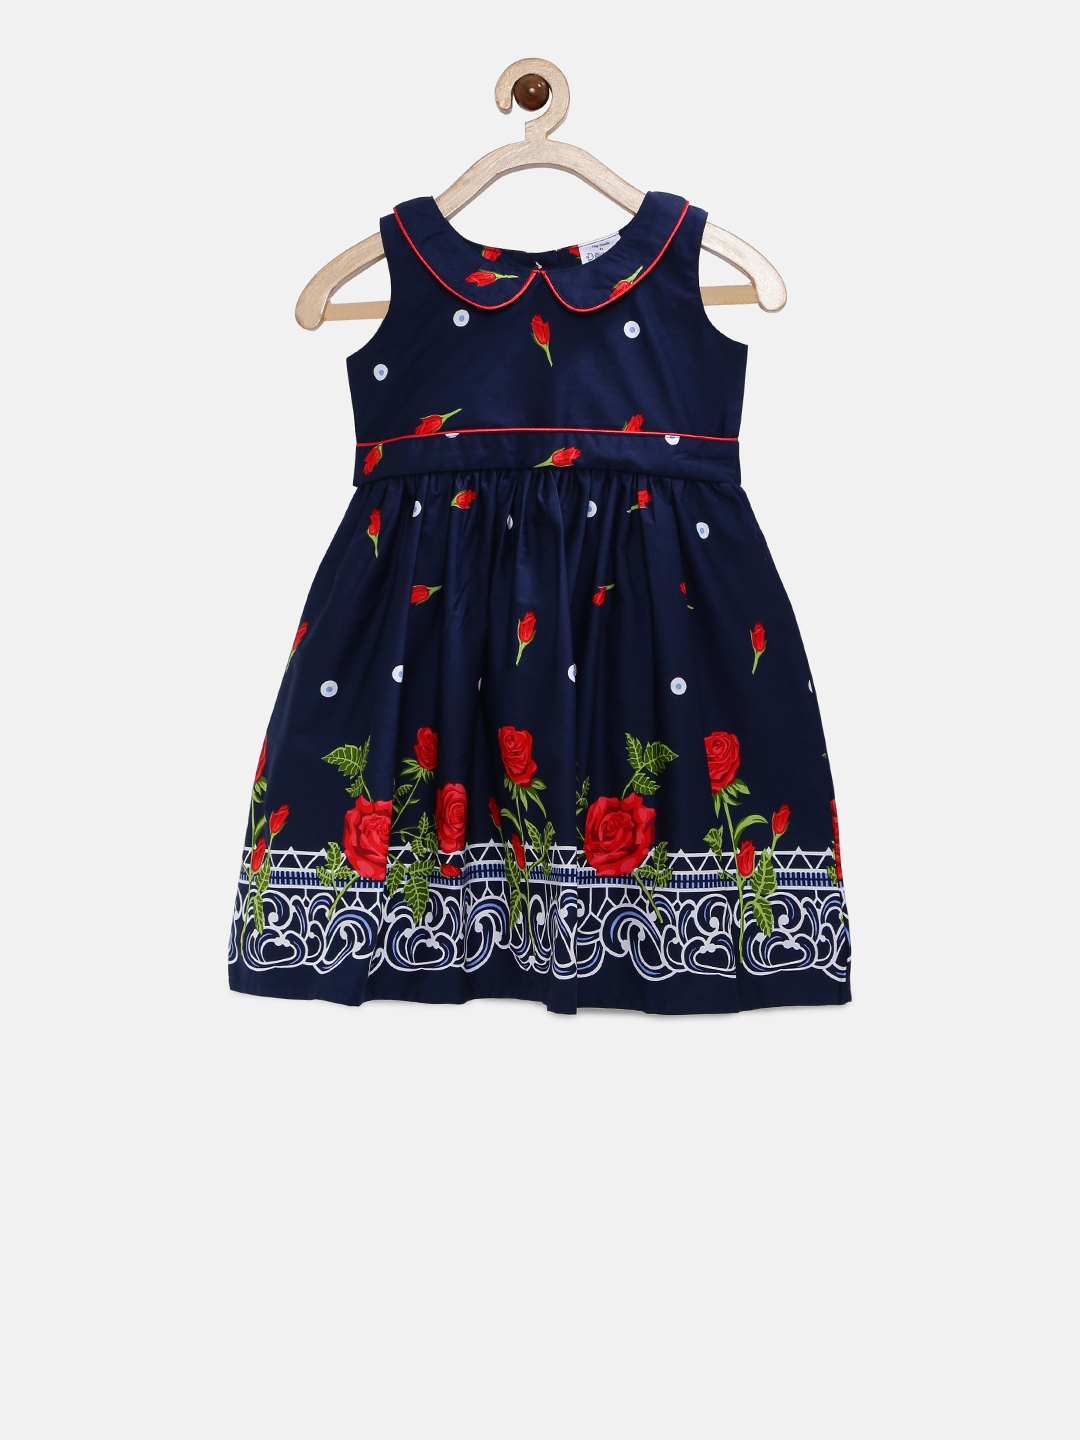 899fb00b2 Buy Doodle Girls Navy Blue Printed Fit And Flare Dress - Dresses for ...